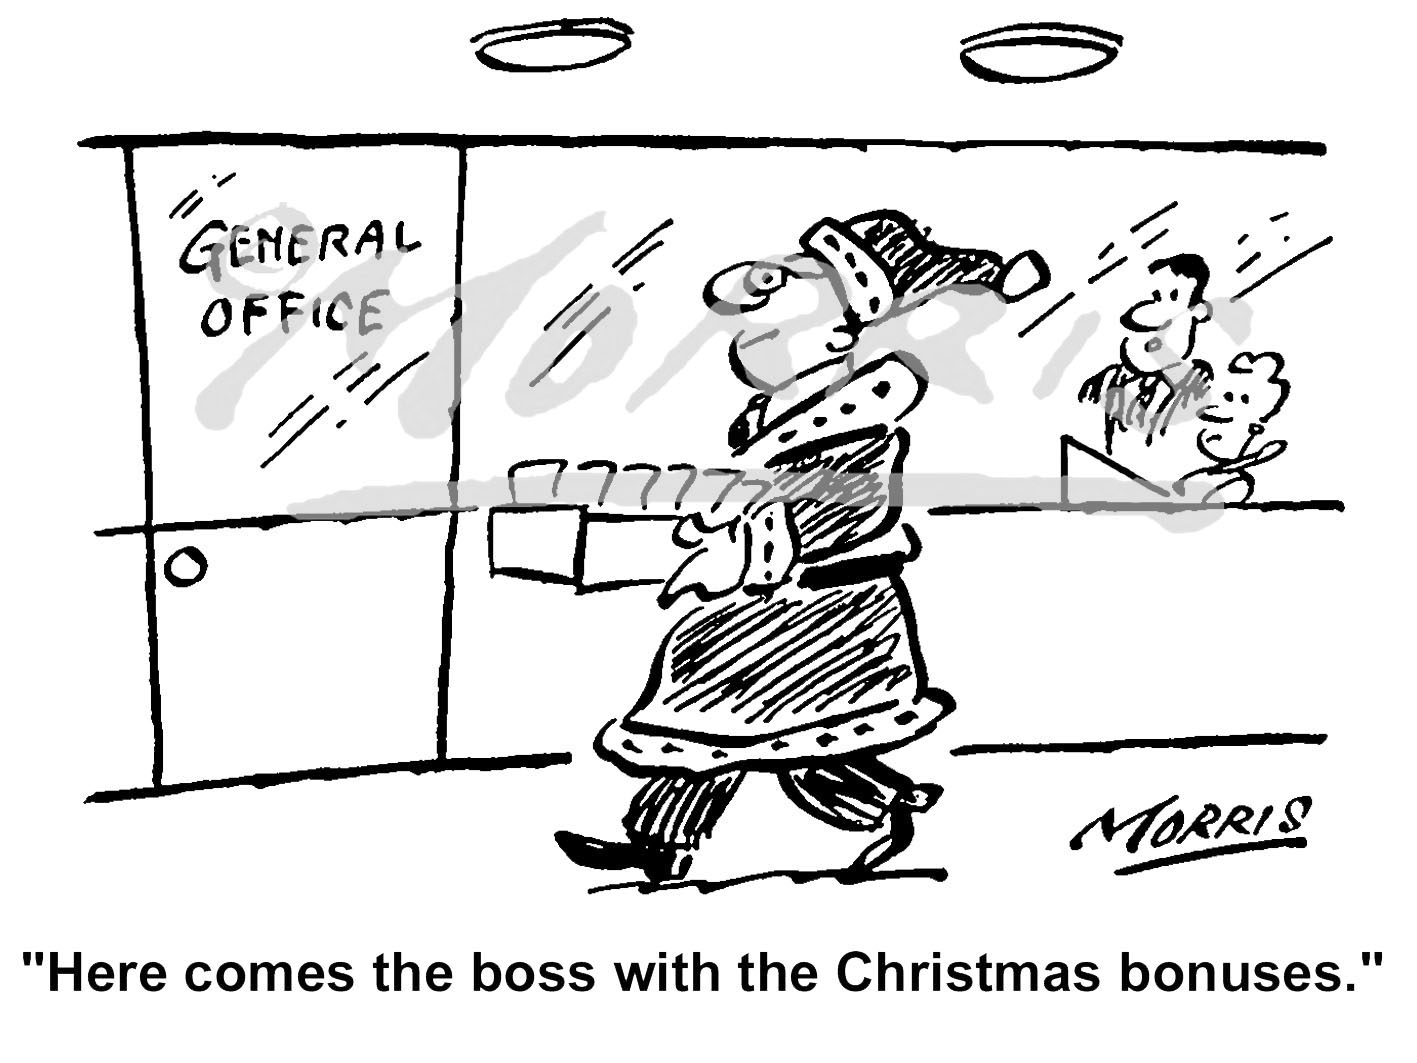 Office manager Christmas bonus cartoon – Ref: 0963bw